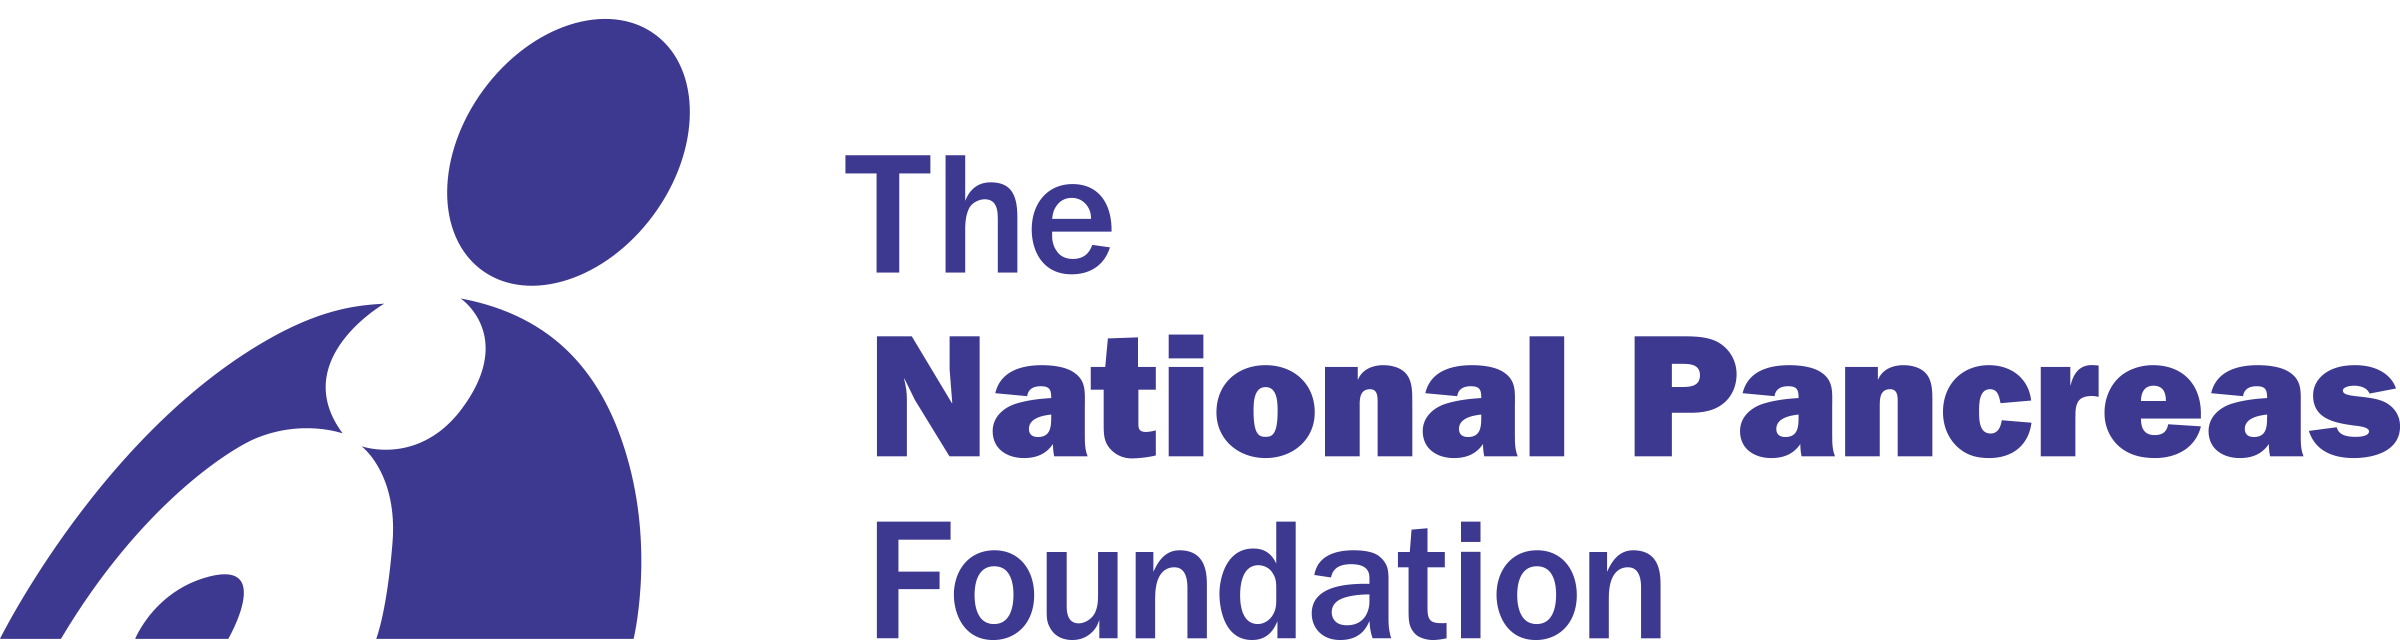 Advocacy Groups | <b>National Pancreas Foundation</b>